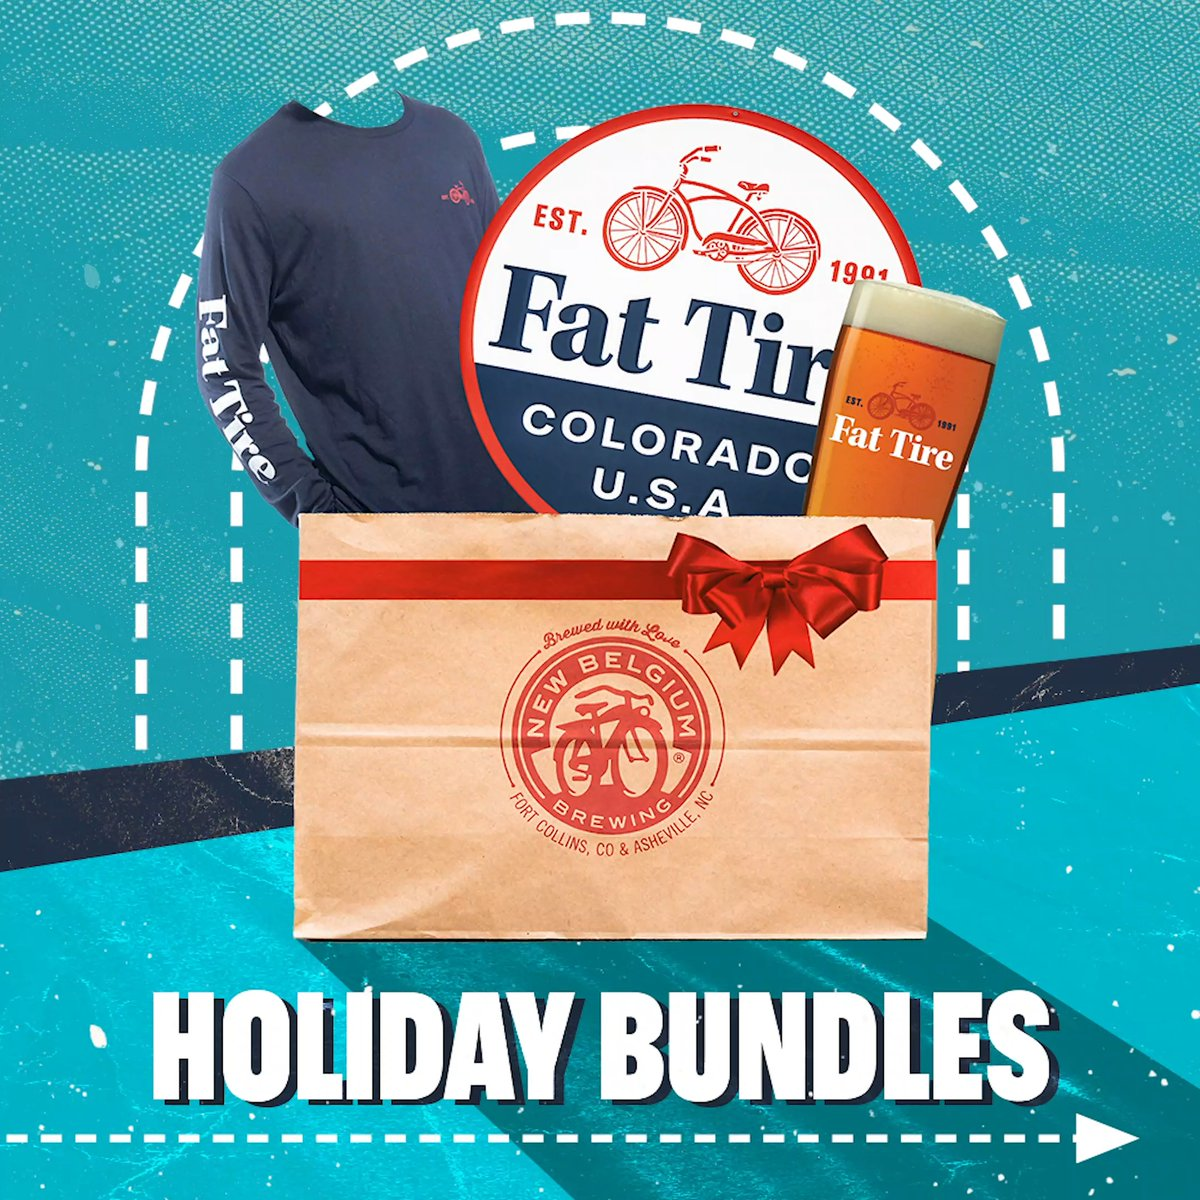 Consider your holiday shopping done 🎁 We've curated the perfect kits for the beer-lover on your list this year. Whether you're shopping for the die-hard Voodoo Ranger fan or the classic Fat Tire fanatic, weve got you covered. newbelgium.com/shop/all-produ…